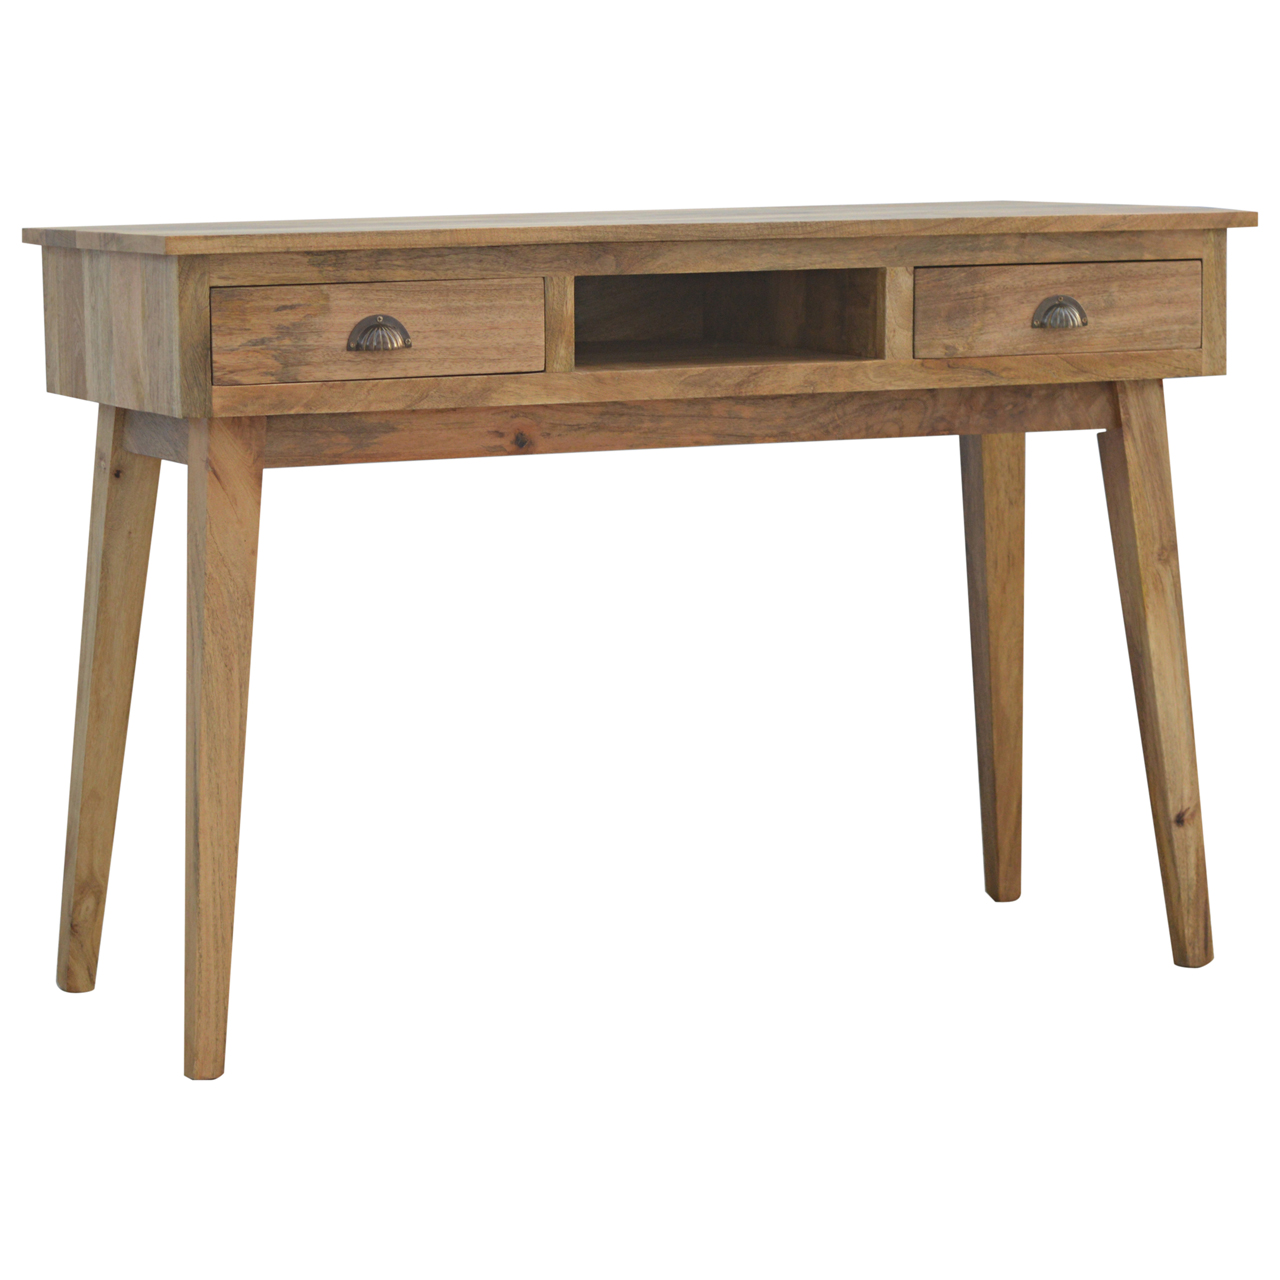 IN122 Writting Desk with 2 Drawers and Open Slot